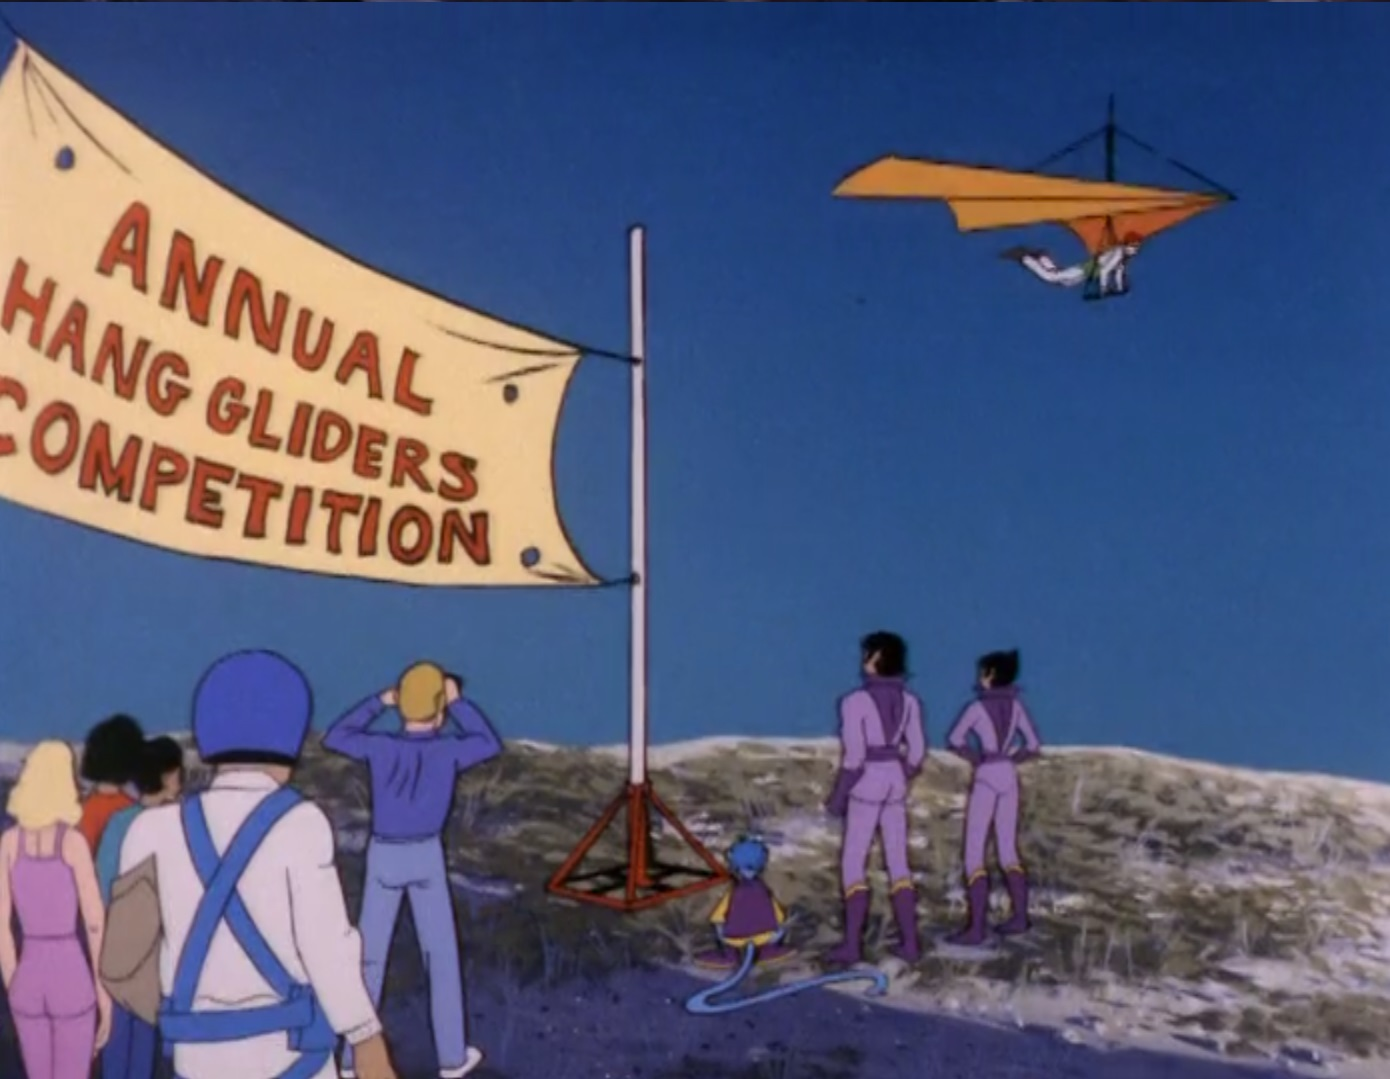 Annual Hang Gliders Competition